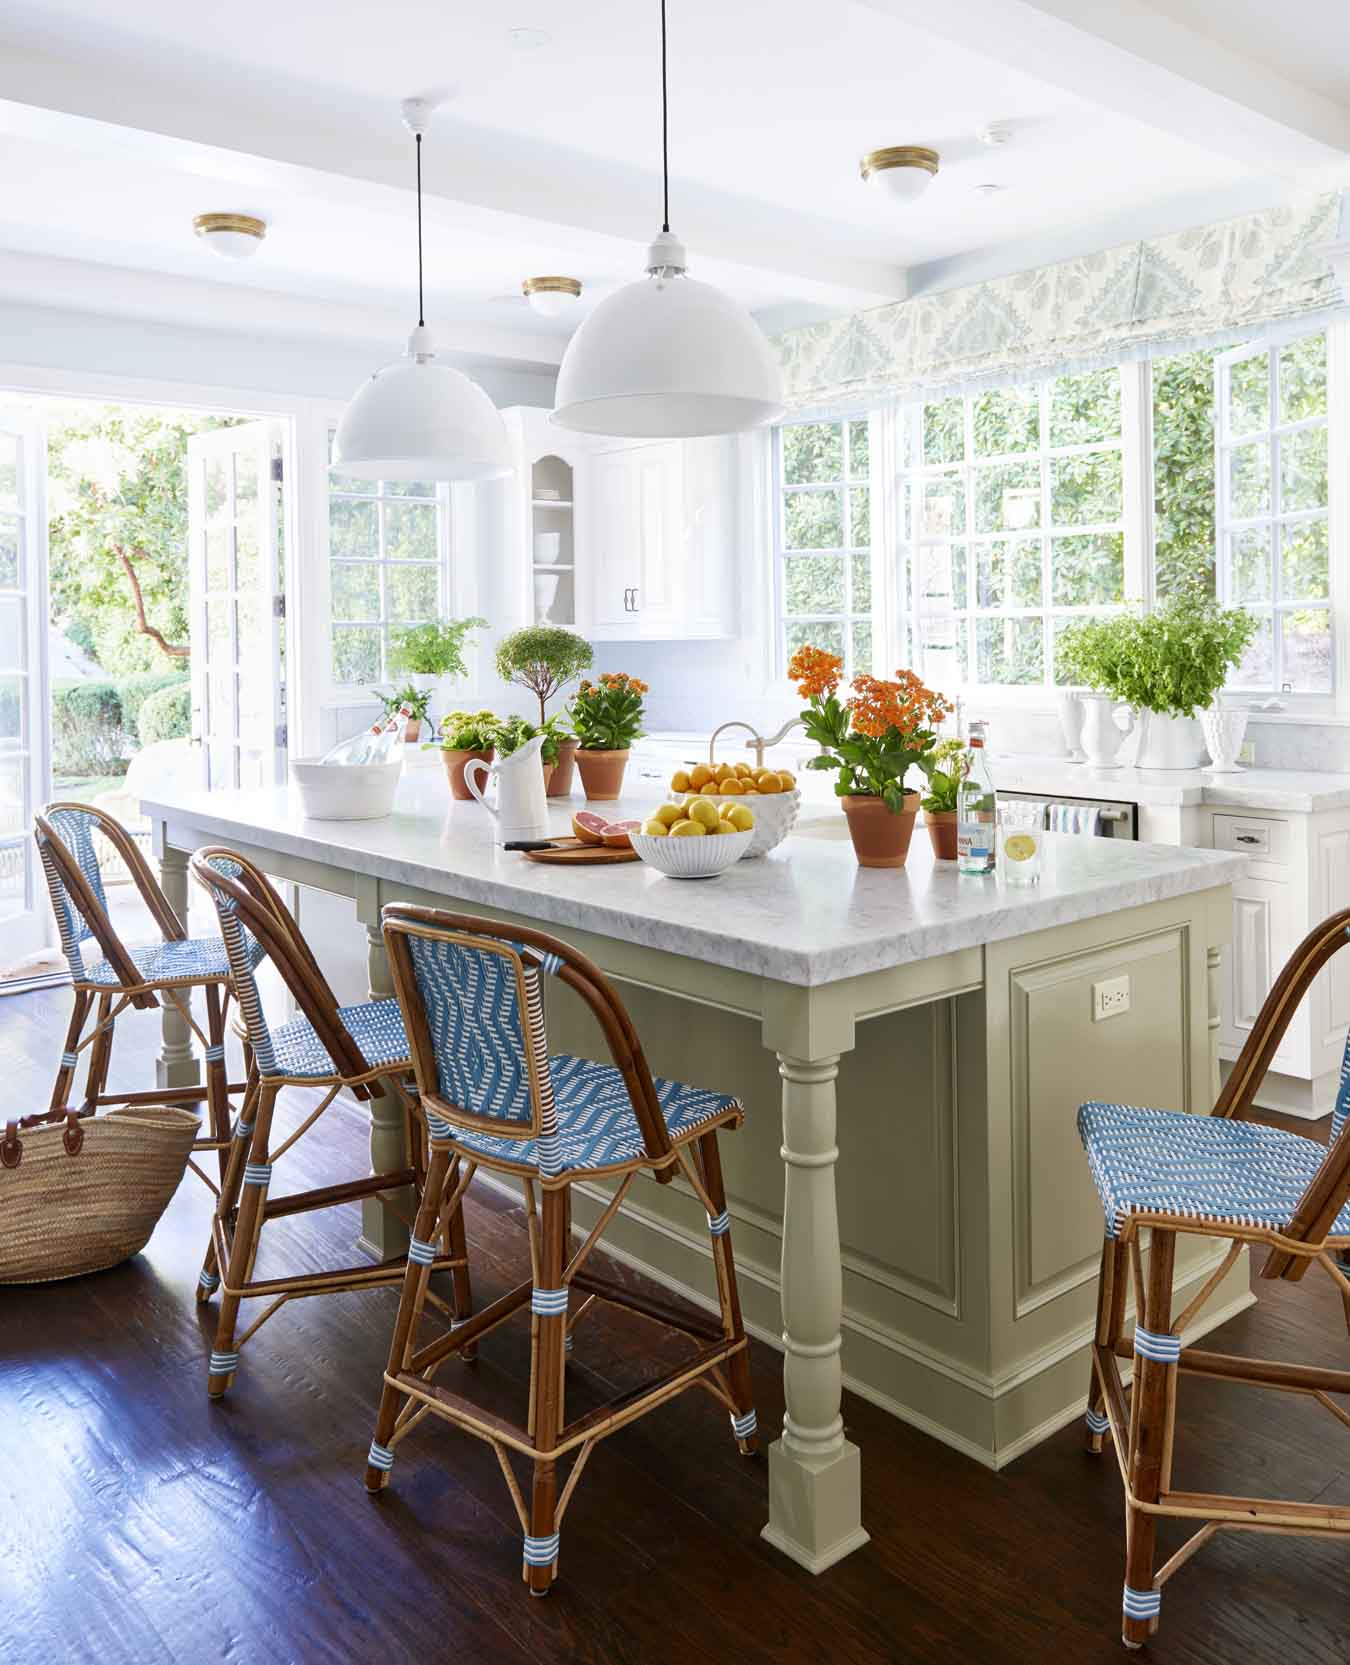 Kitchen Pictures With Islands: 18 Amazing Kitchen Island Ideas, Plus Costs & ROI